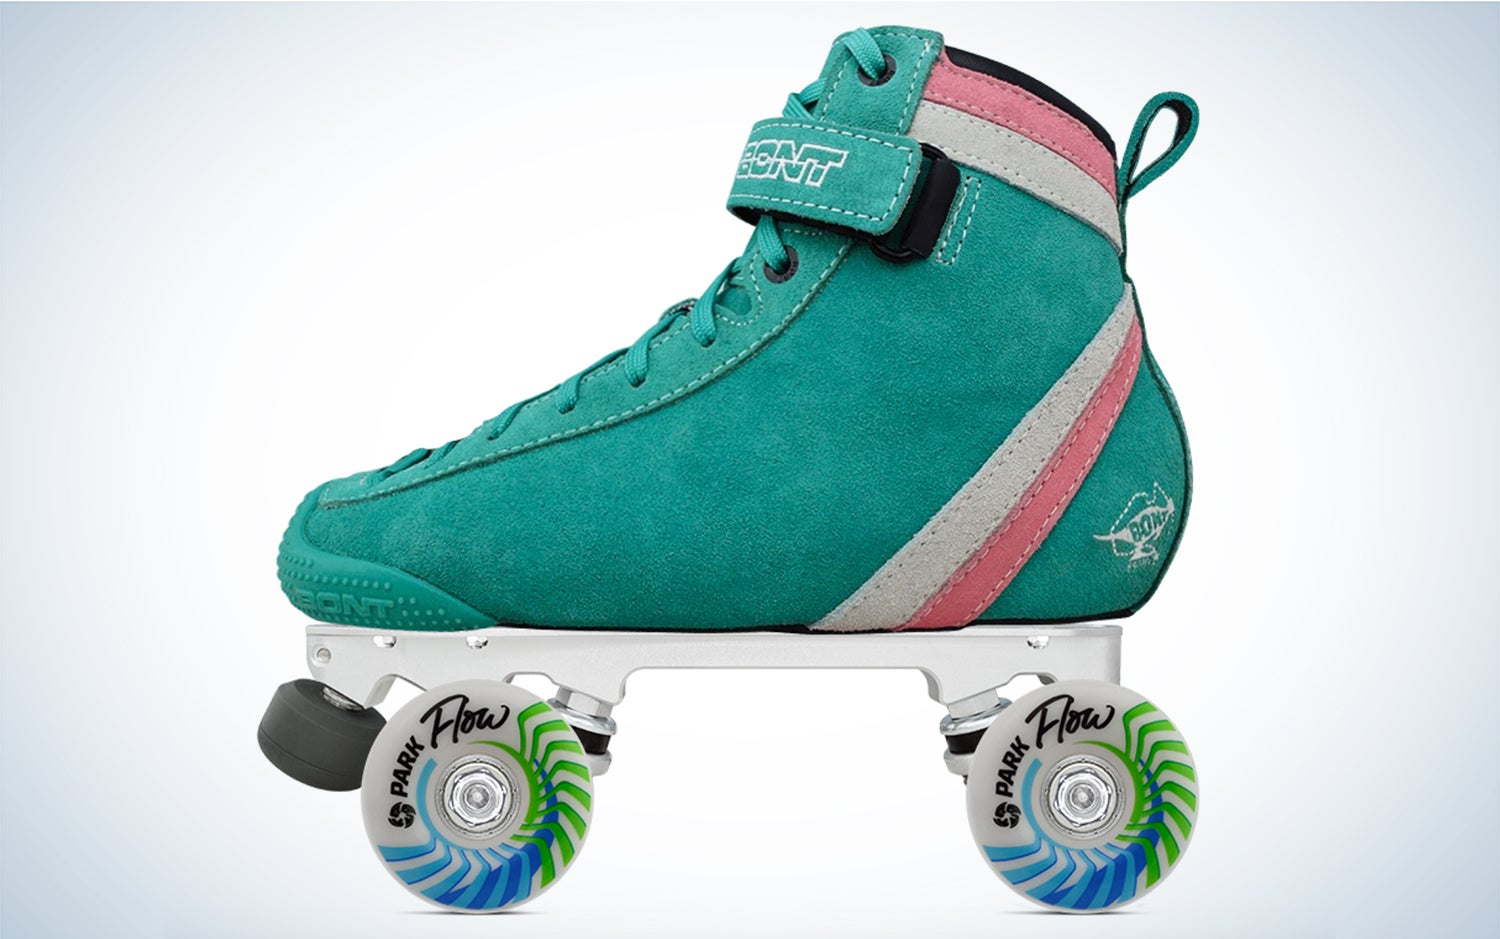 a teal, pink, and white suede skate